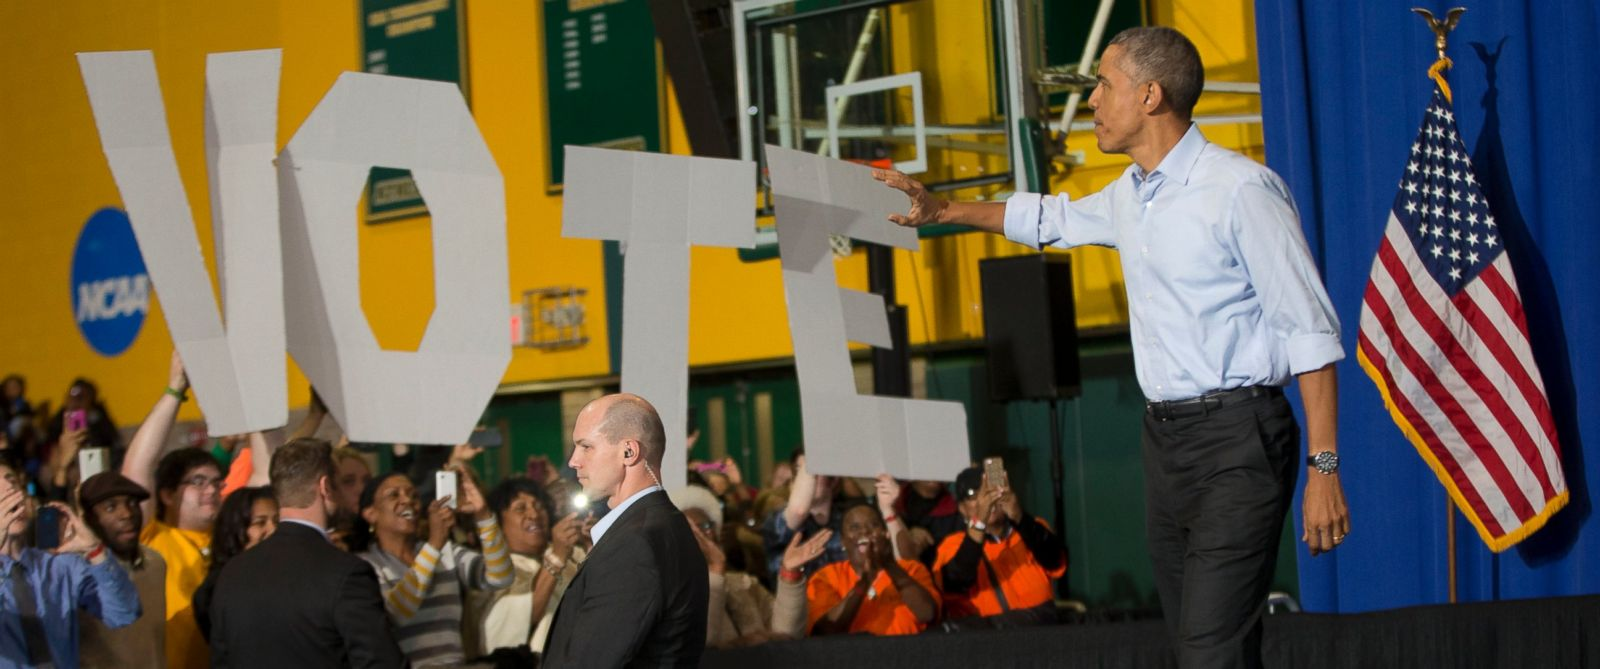 PHOTO: President Barack Obama waves to supporters during a campaign event for U.S. Senate candidate Gary Peters and gubernatorial candidate Mark Schauer at Wayne State University, Saturday, Nov. 1, 2014 in Detroit, Mich.